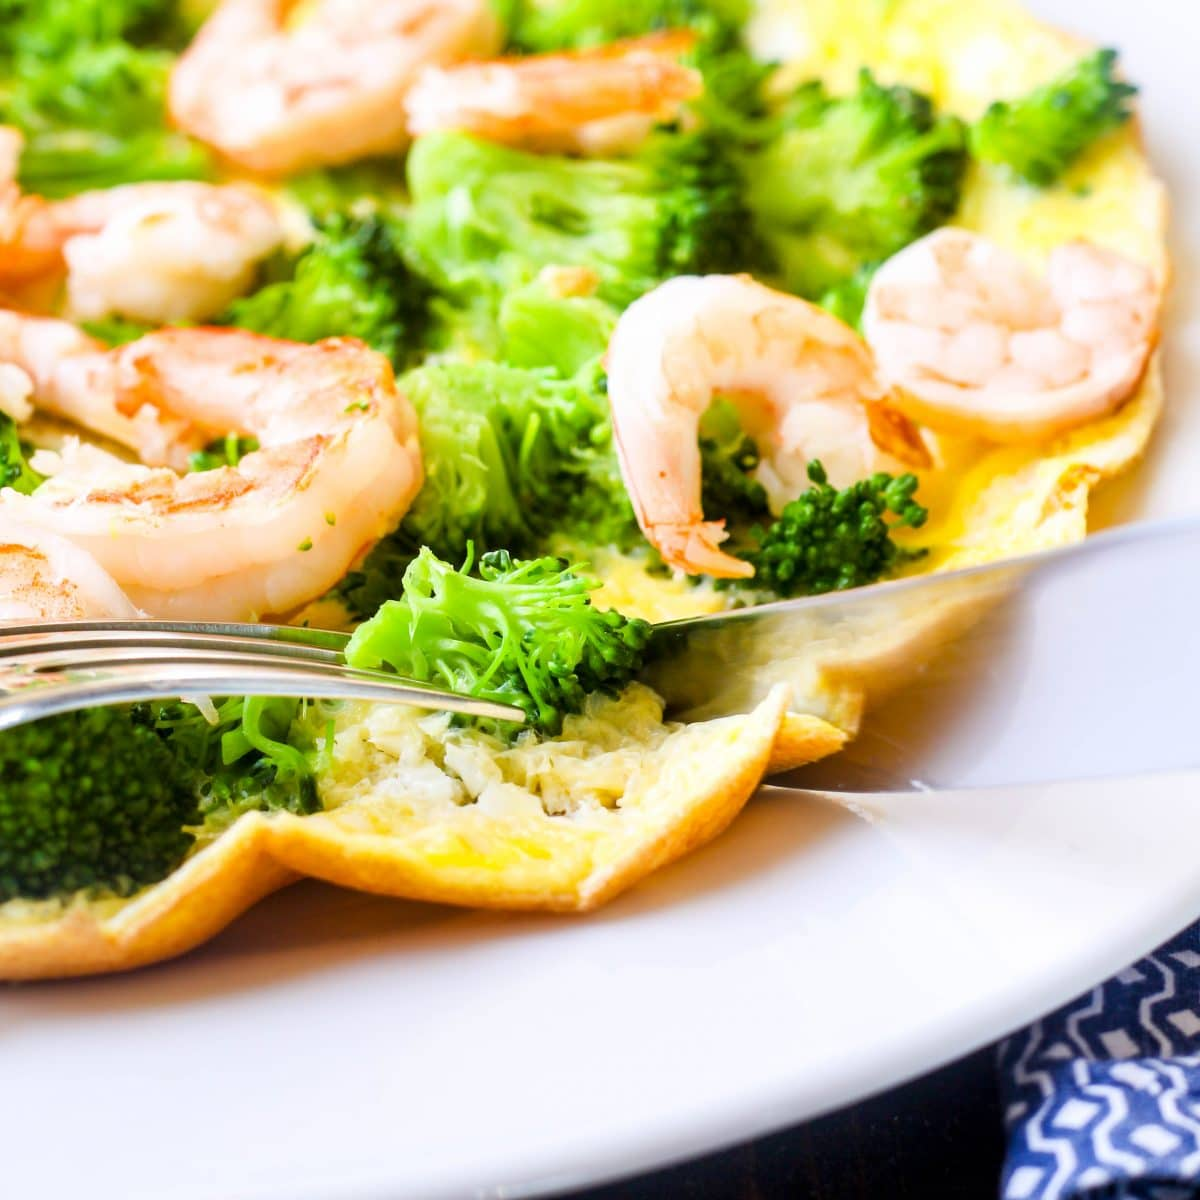 Shrimp & Broccoli Omelet